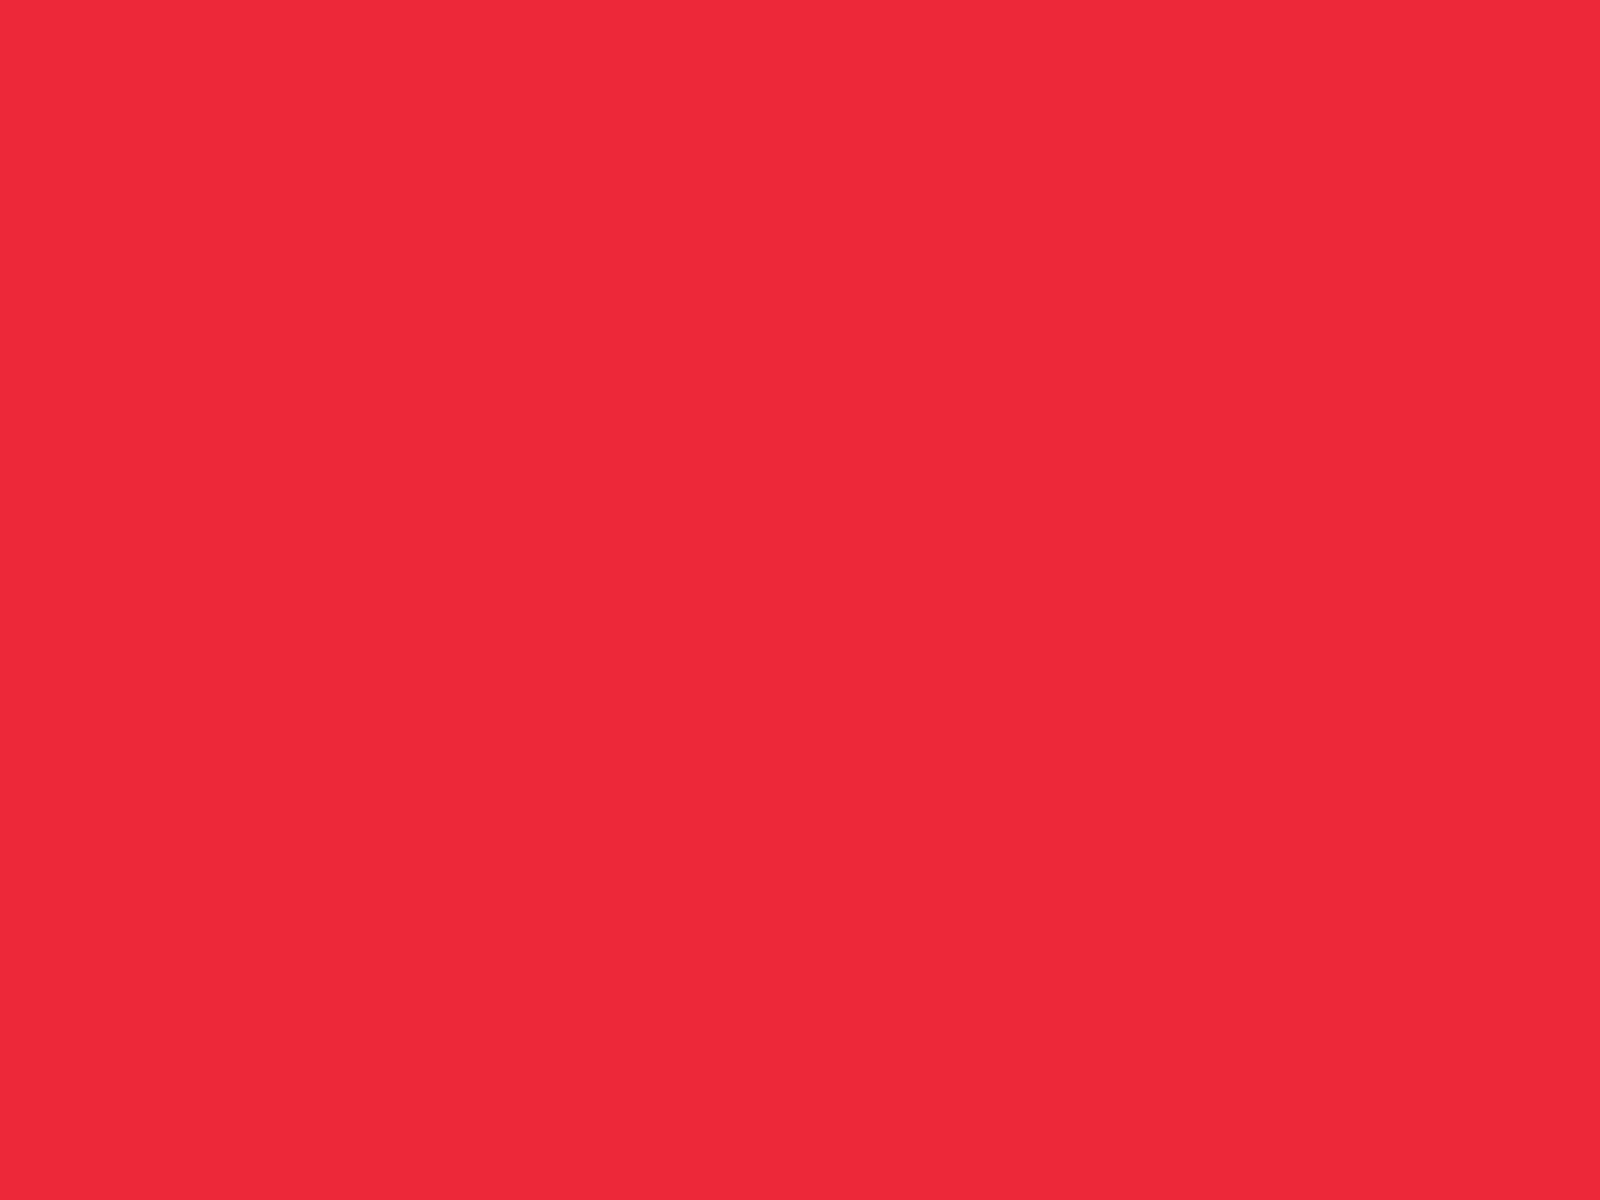 1600x1200 Imperial Red Solid Color Background